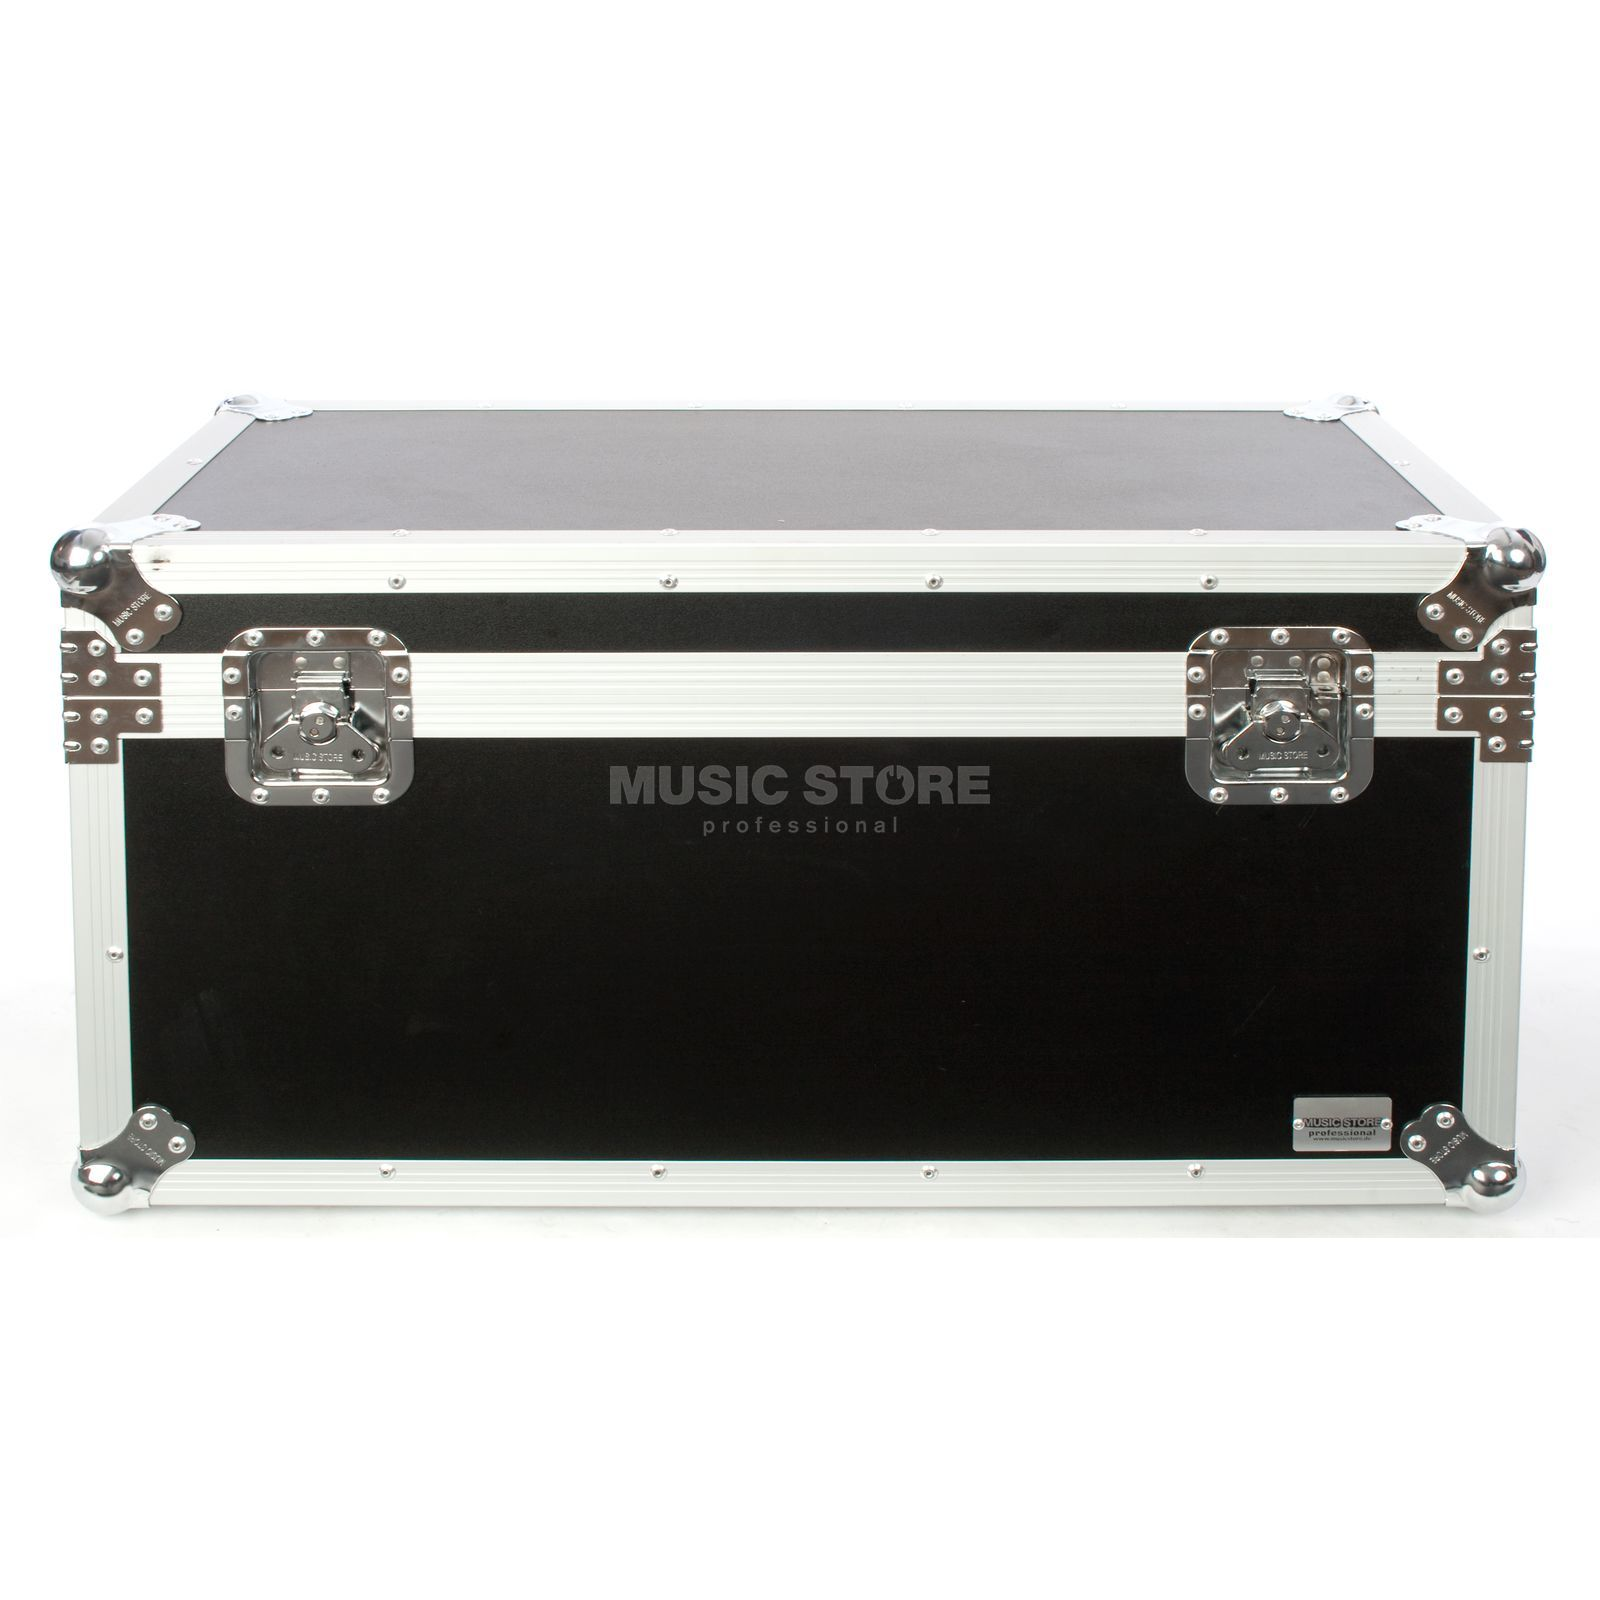 MUSIC STORE Universal Transport Case I 780 x 375 x 405 mm Produktbild